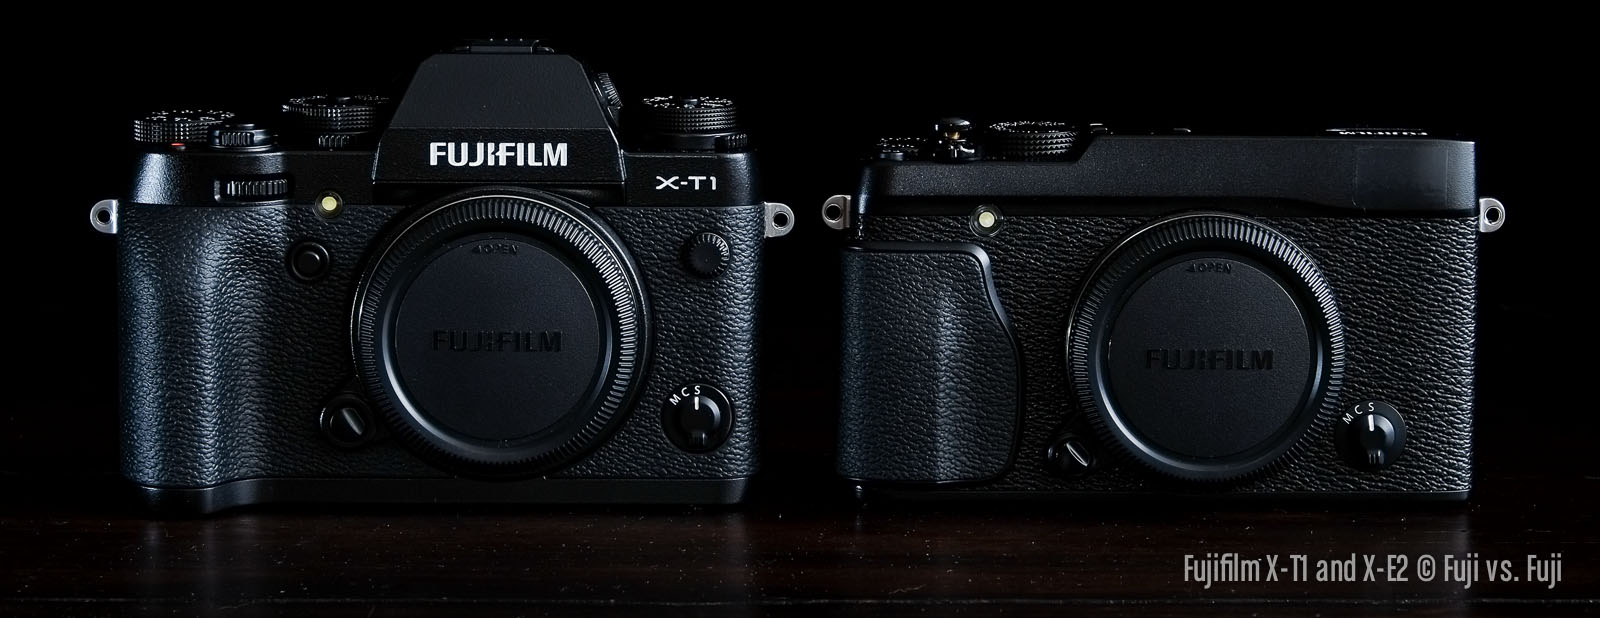 Front view. Pretty much the same. Only the viewfinder is making the X-T1 a little taller.